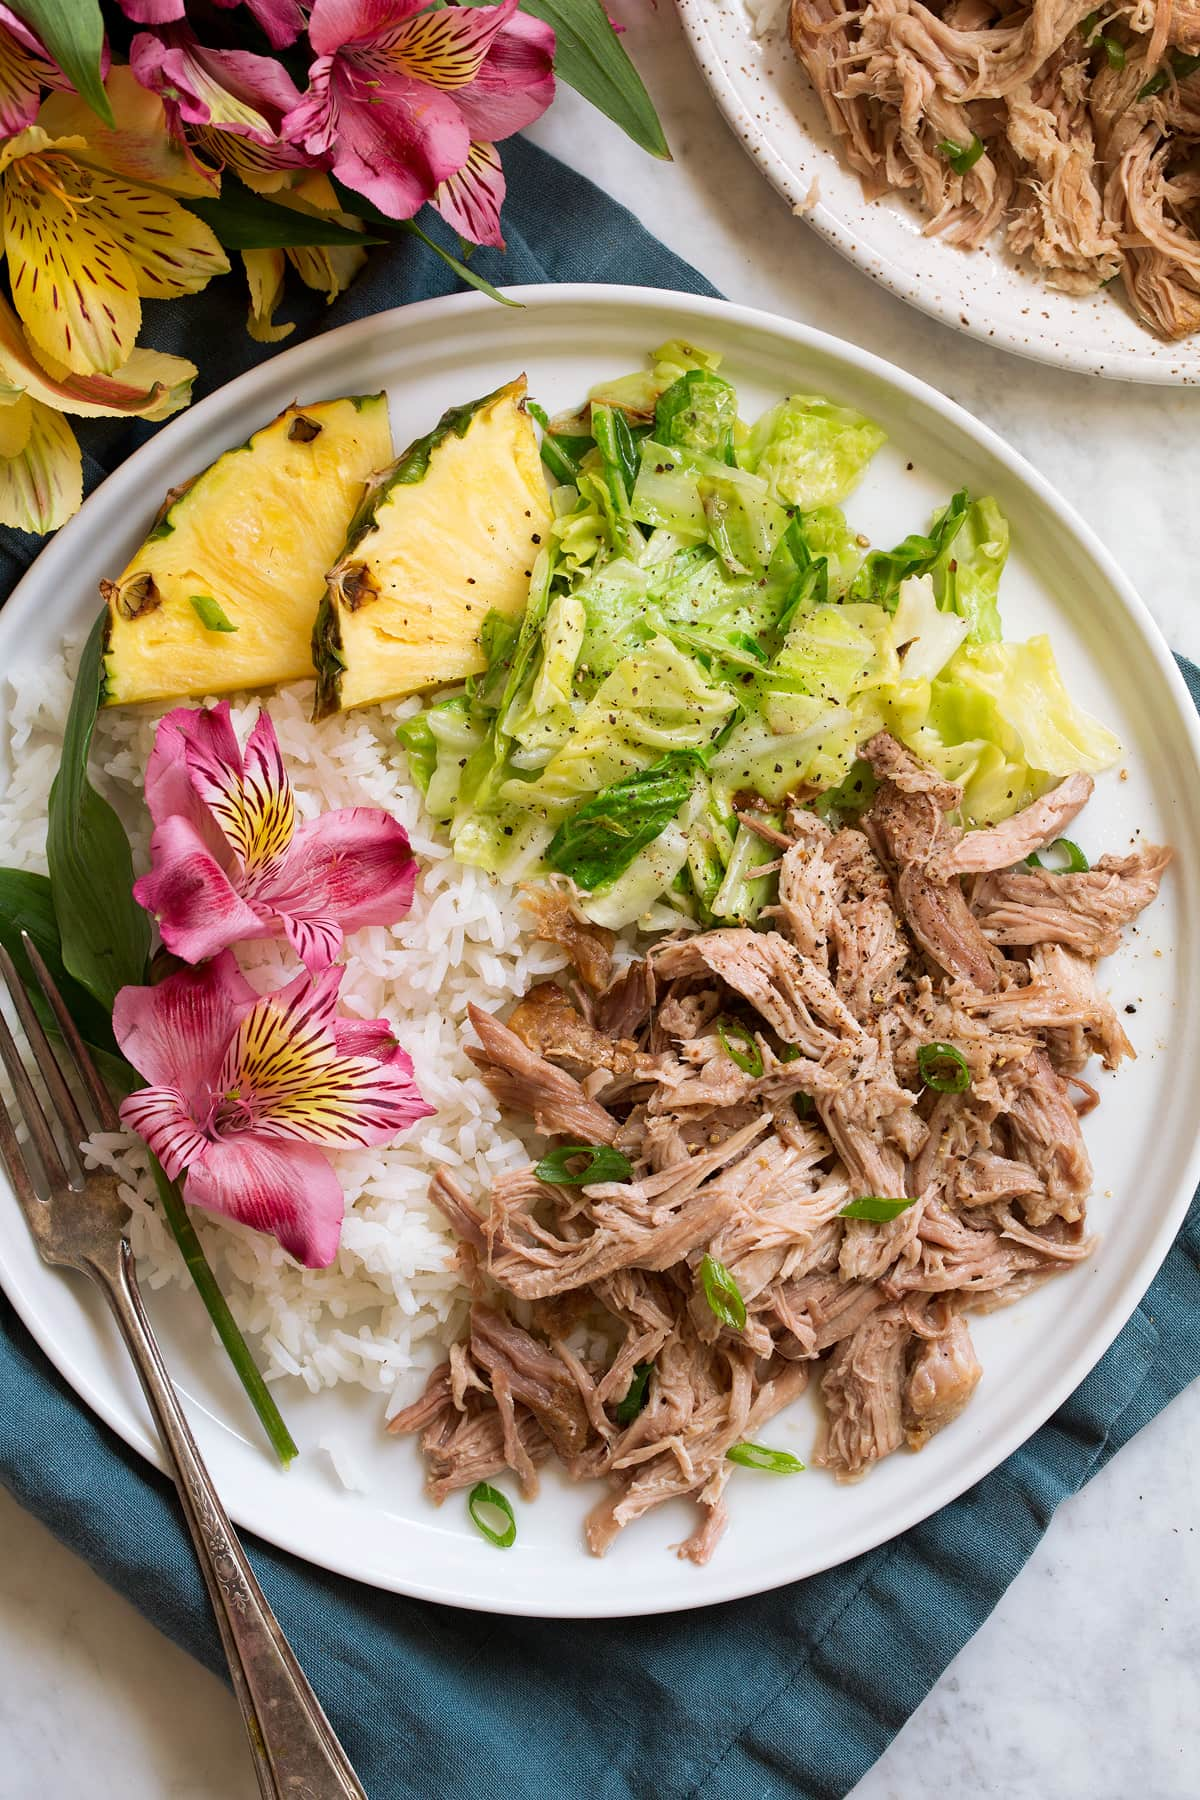 Single serving of shredded kalua pork on a white serving plate shown with sides of white rice, sautéed cabbage, fresh pineapple and flowers.